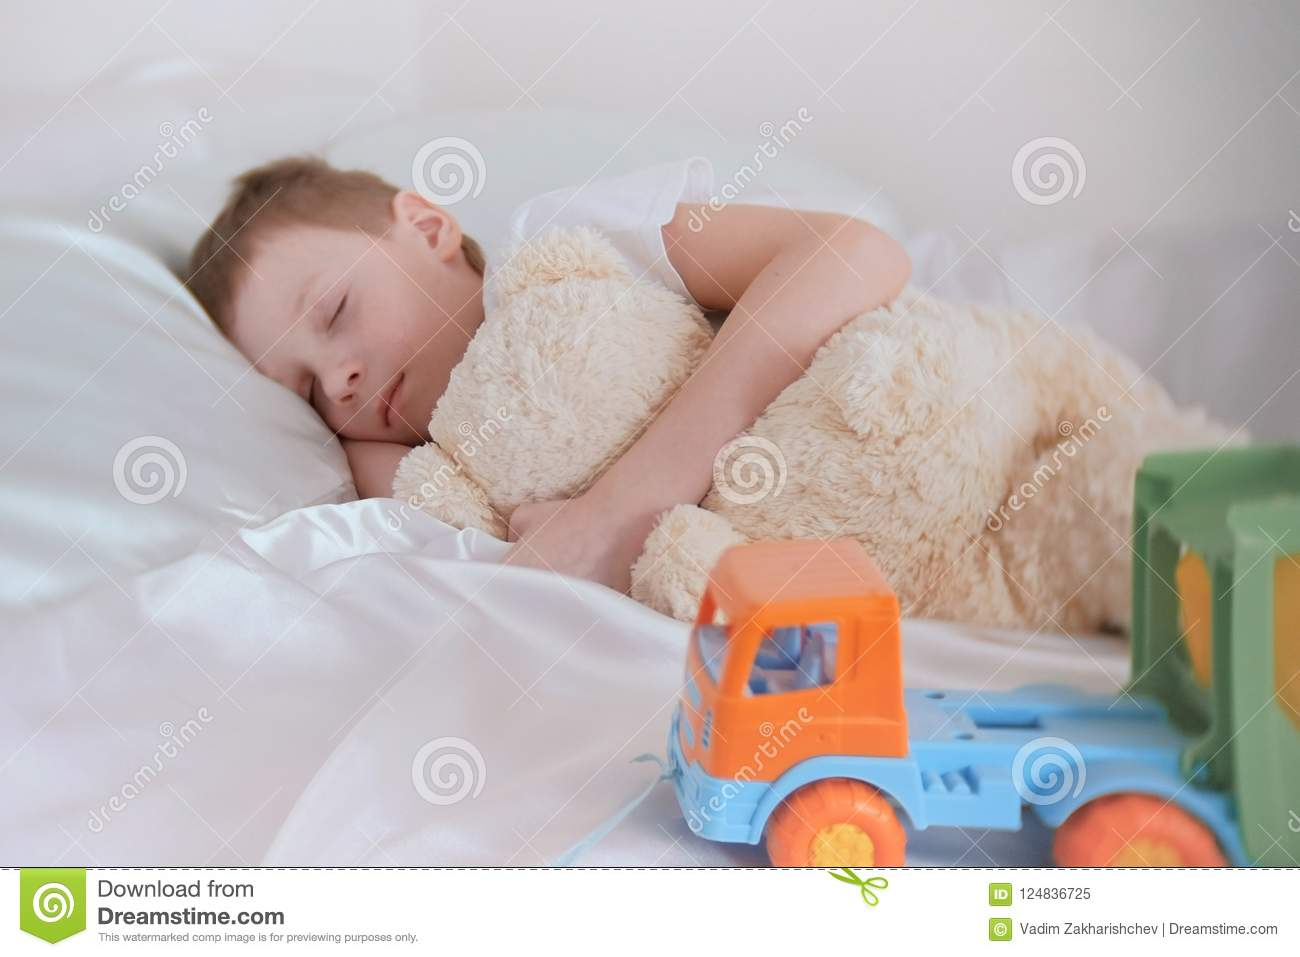 Seven-year-old boy sleeping with his toys bear and plastic car.